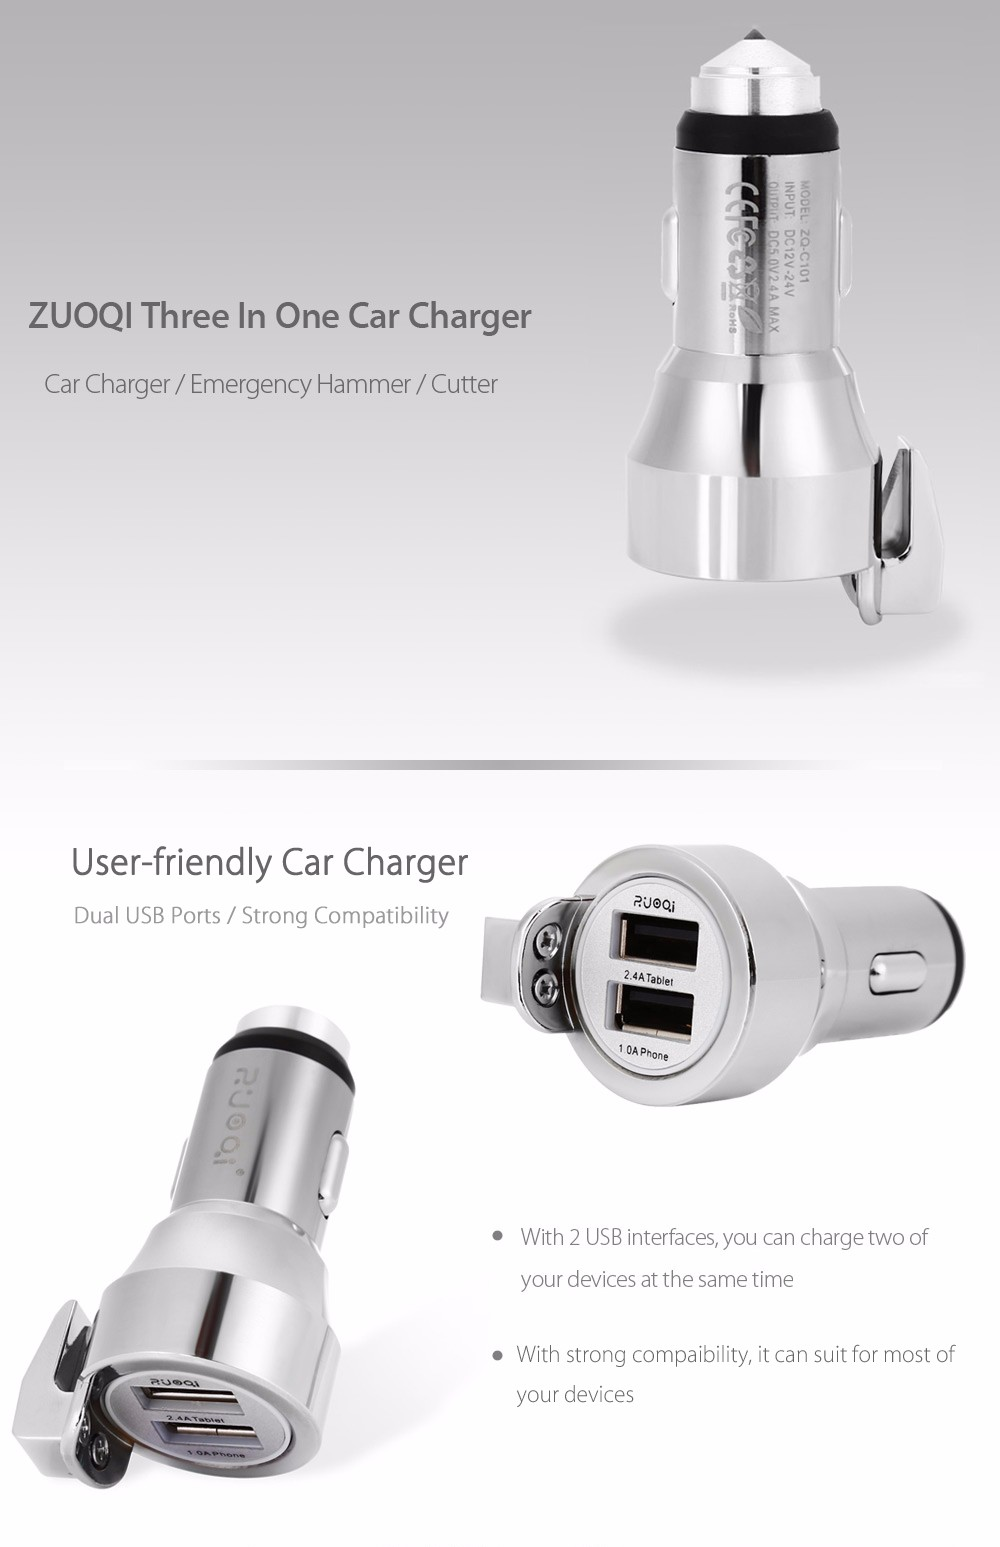 ZUOQI ZQ - C101 Car Charger Dual USB Ports Safety Hammer Tungsten Steel Head Cutter